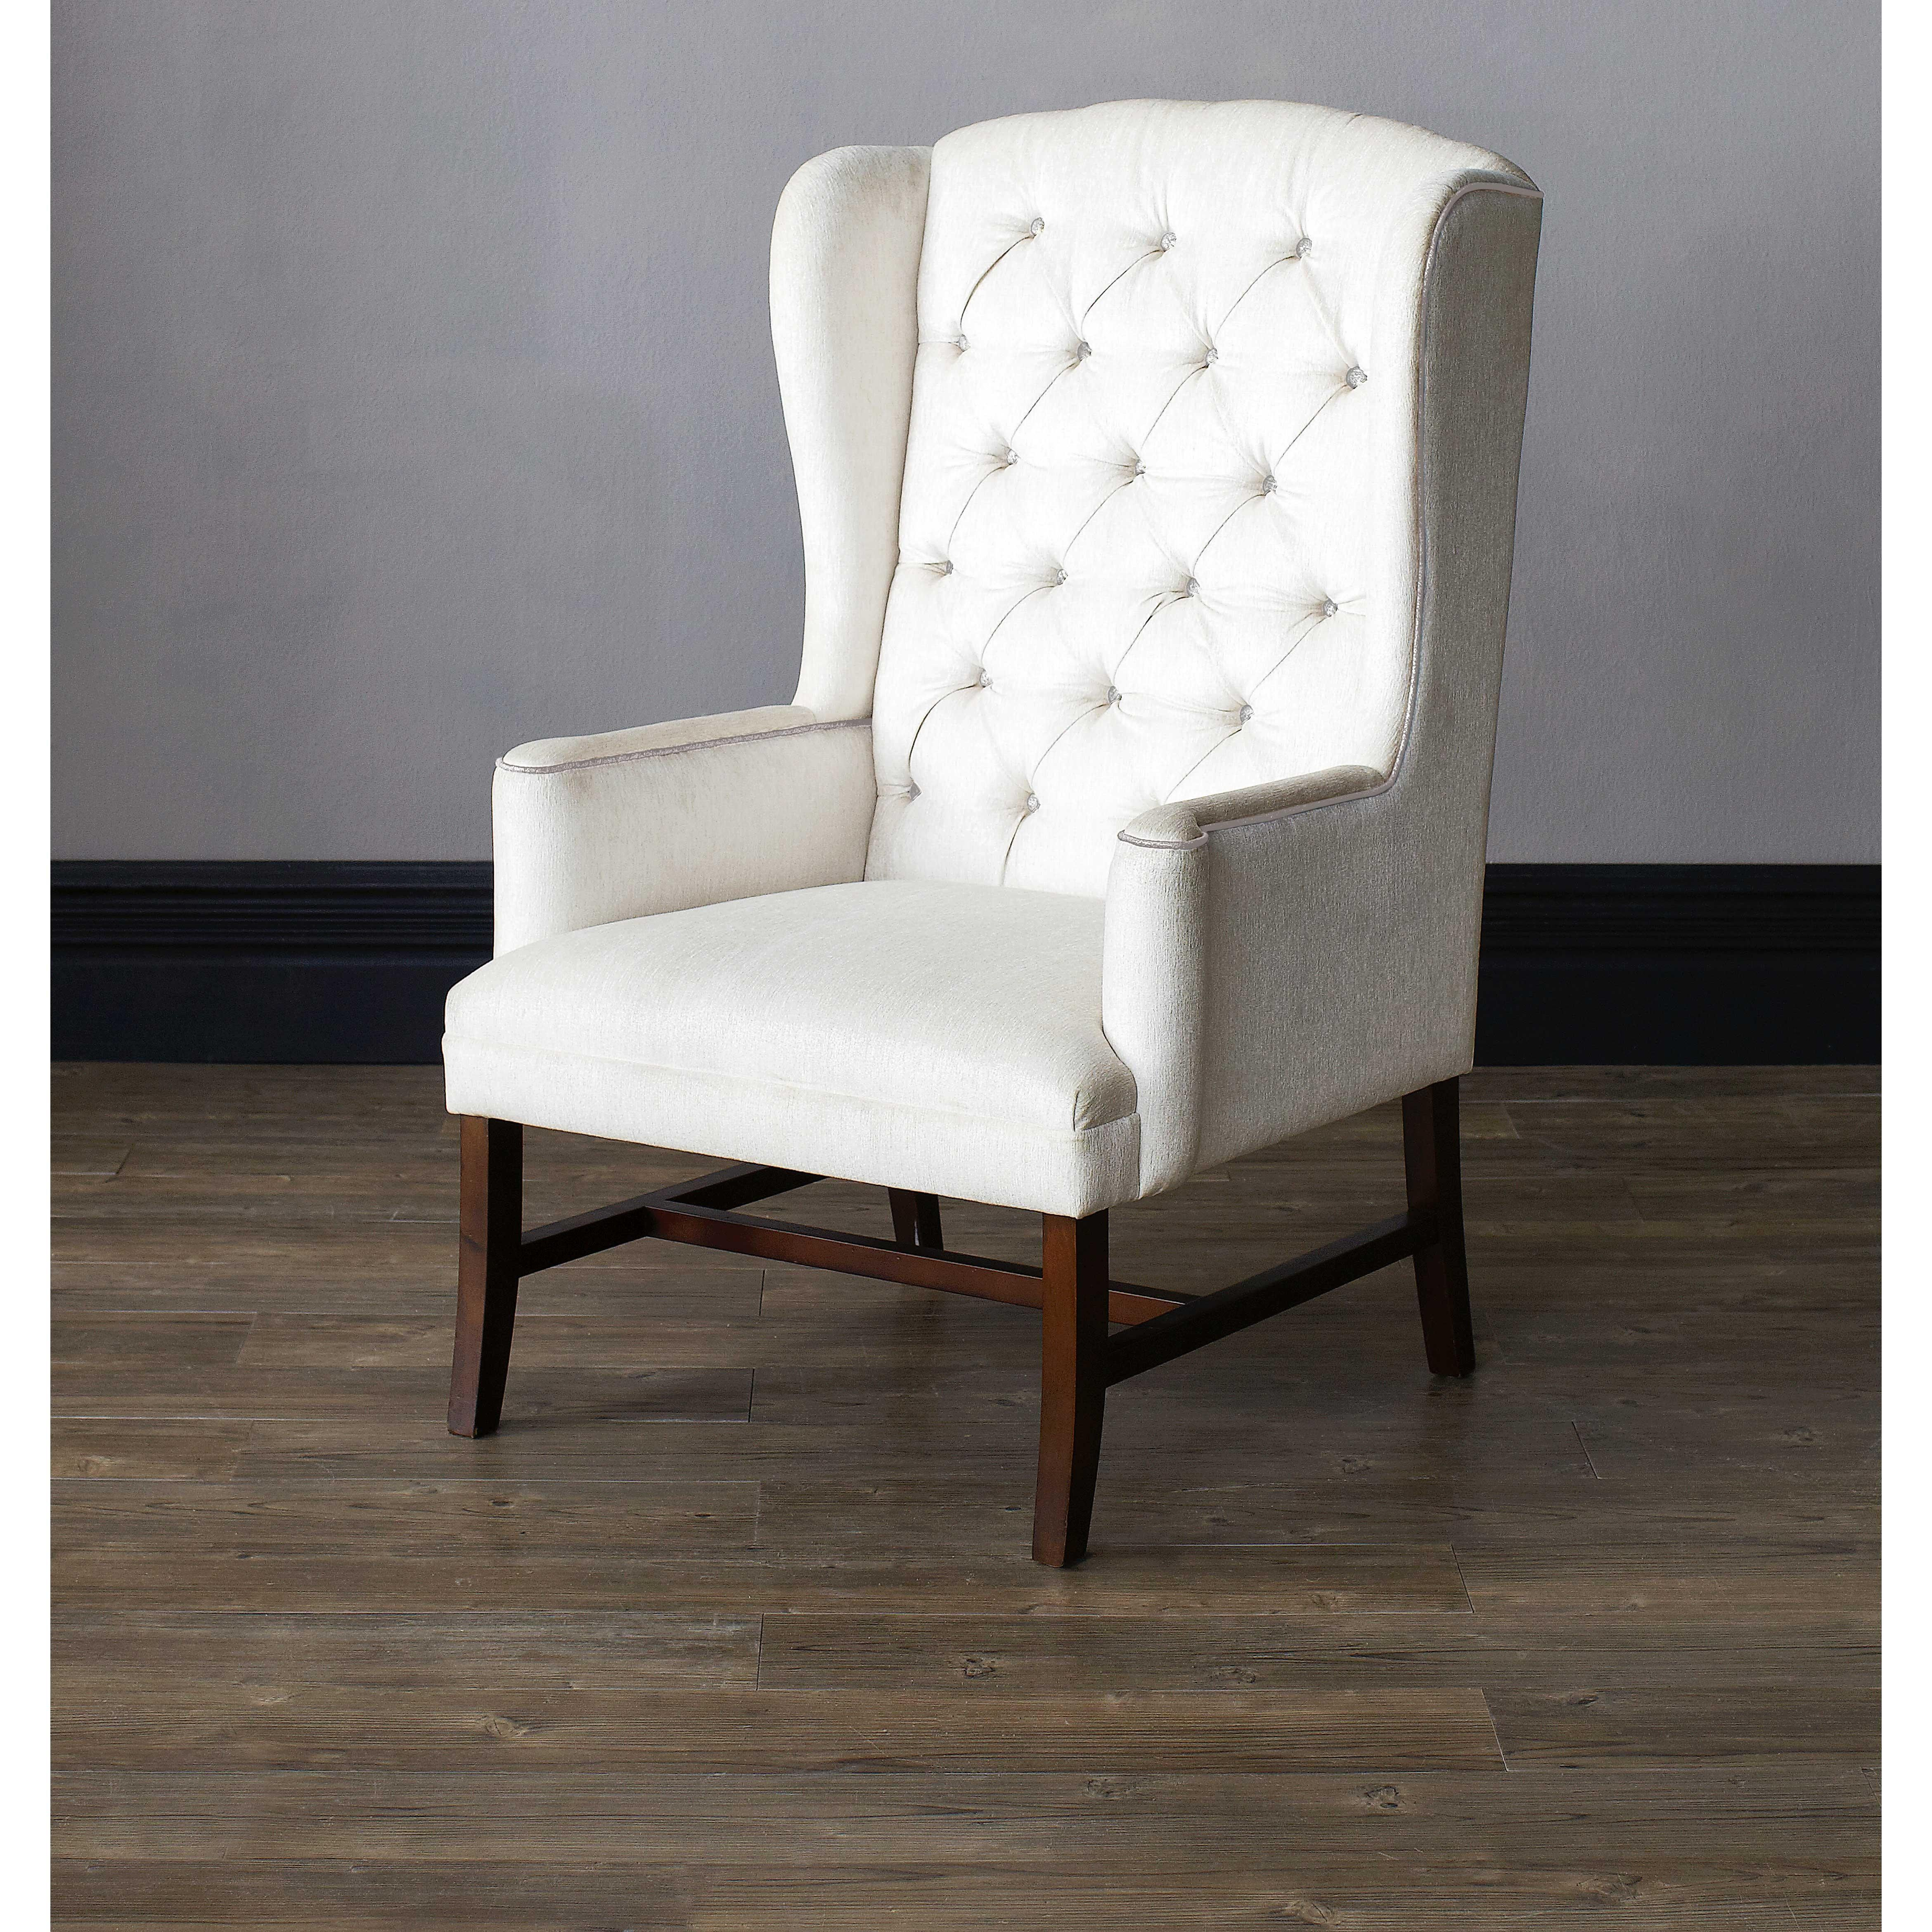 Next Home Bedroom Furniture Exuma Chair Harvey Norman Next To Piano Home Decor Pinterest